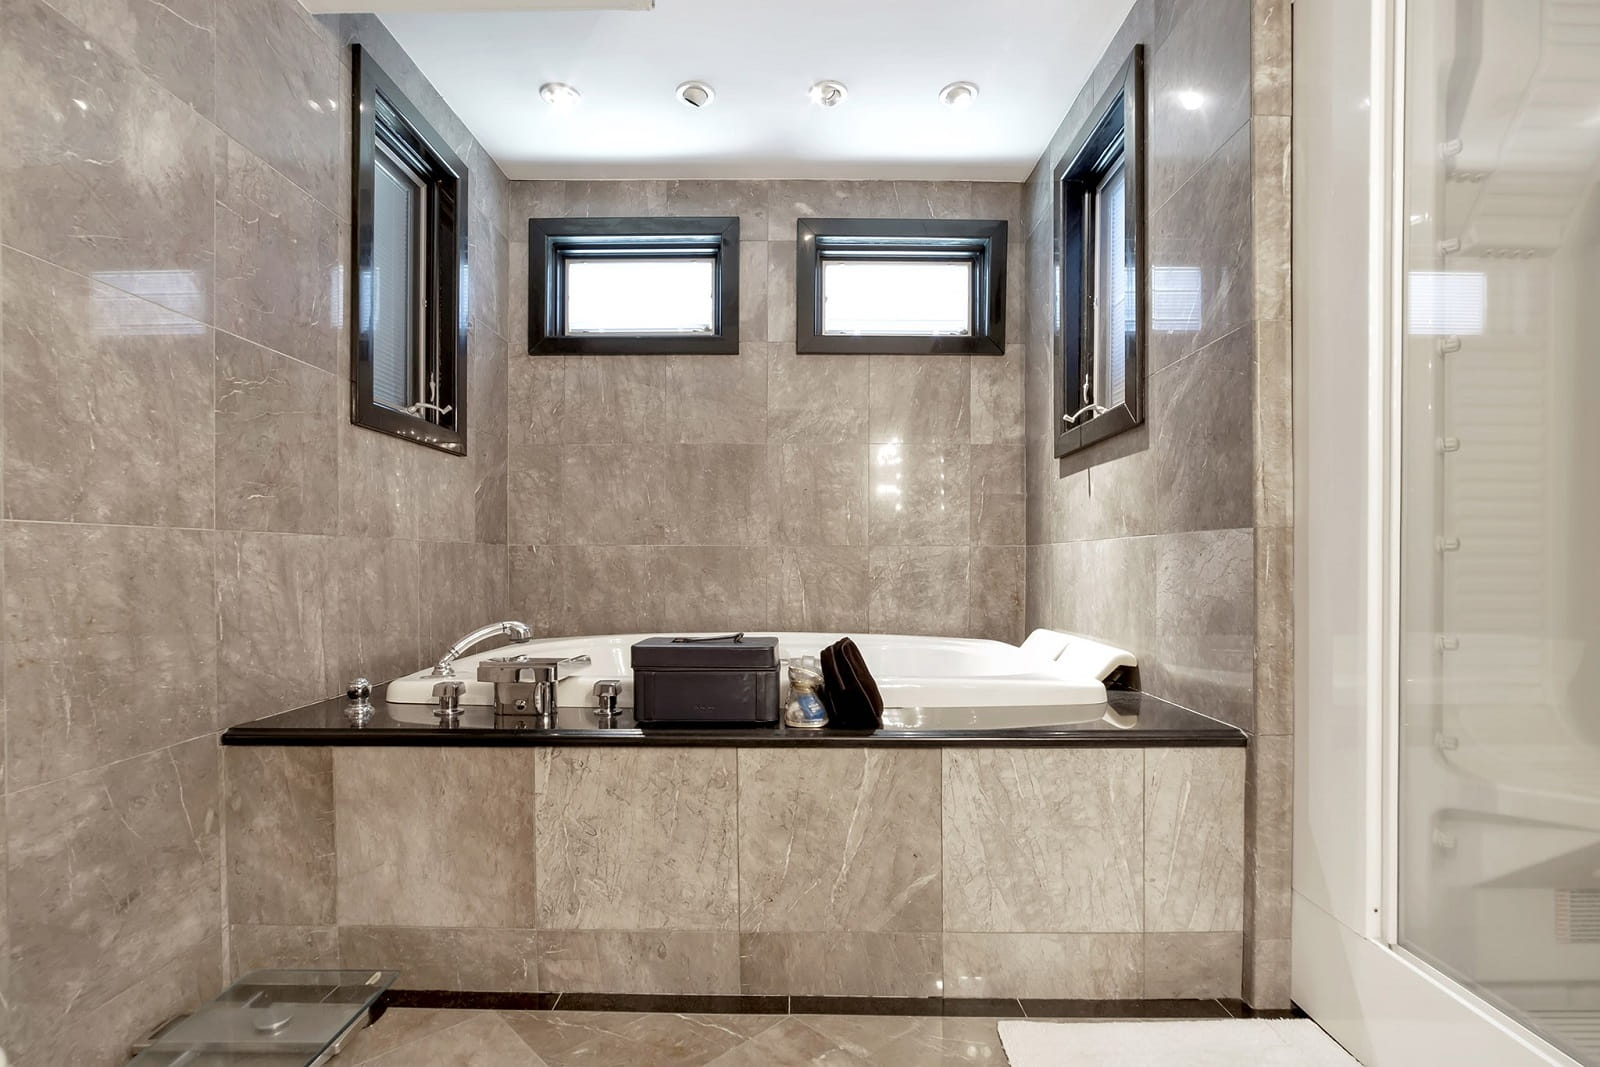 Real Estate Photography in Staten Island - New York - NY - USA - Bathroom View